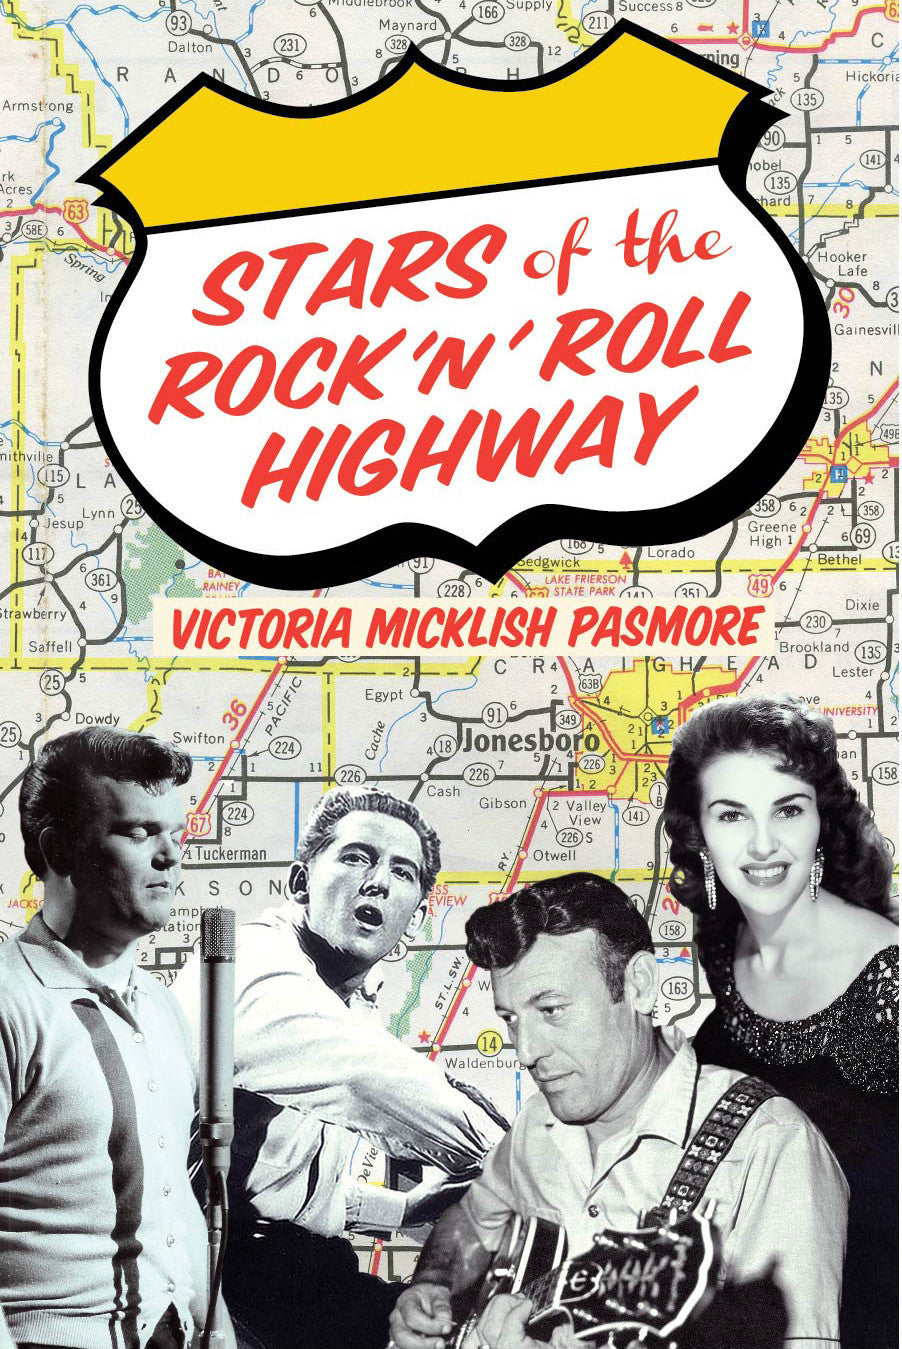 Stars of the Rock 'n' Roll Highway